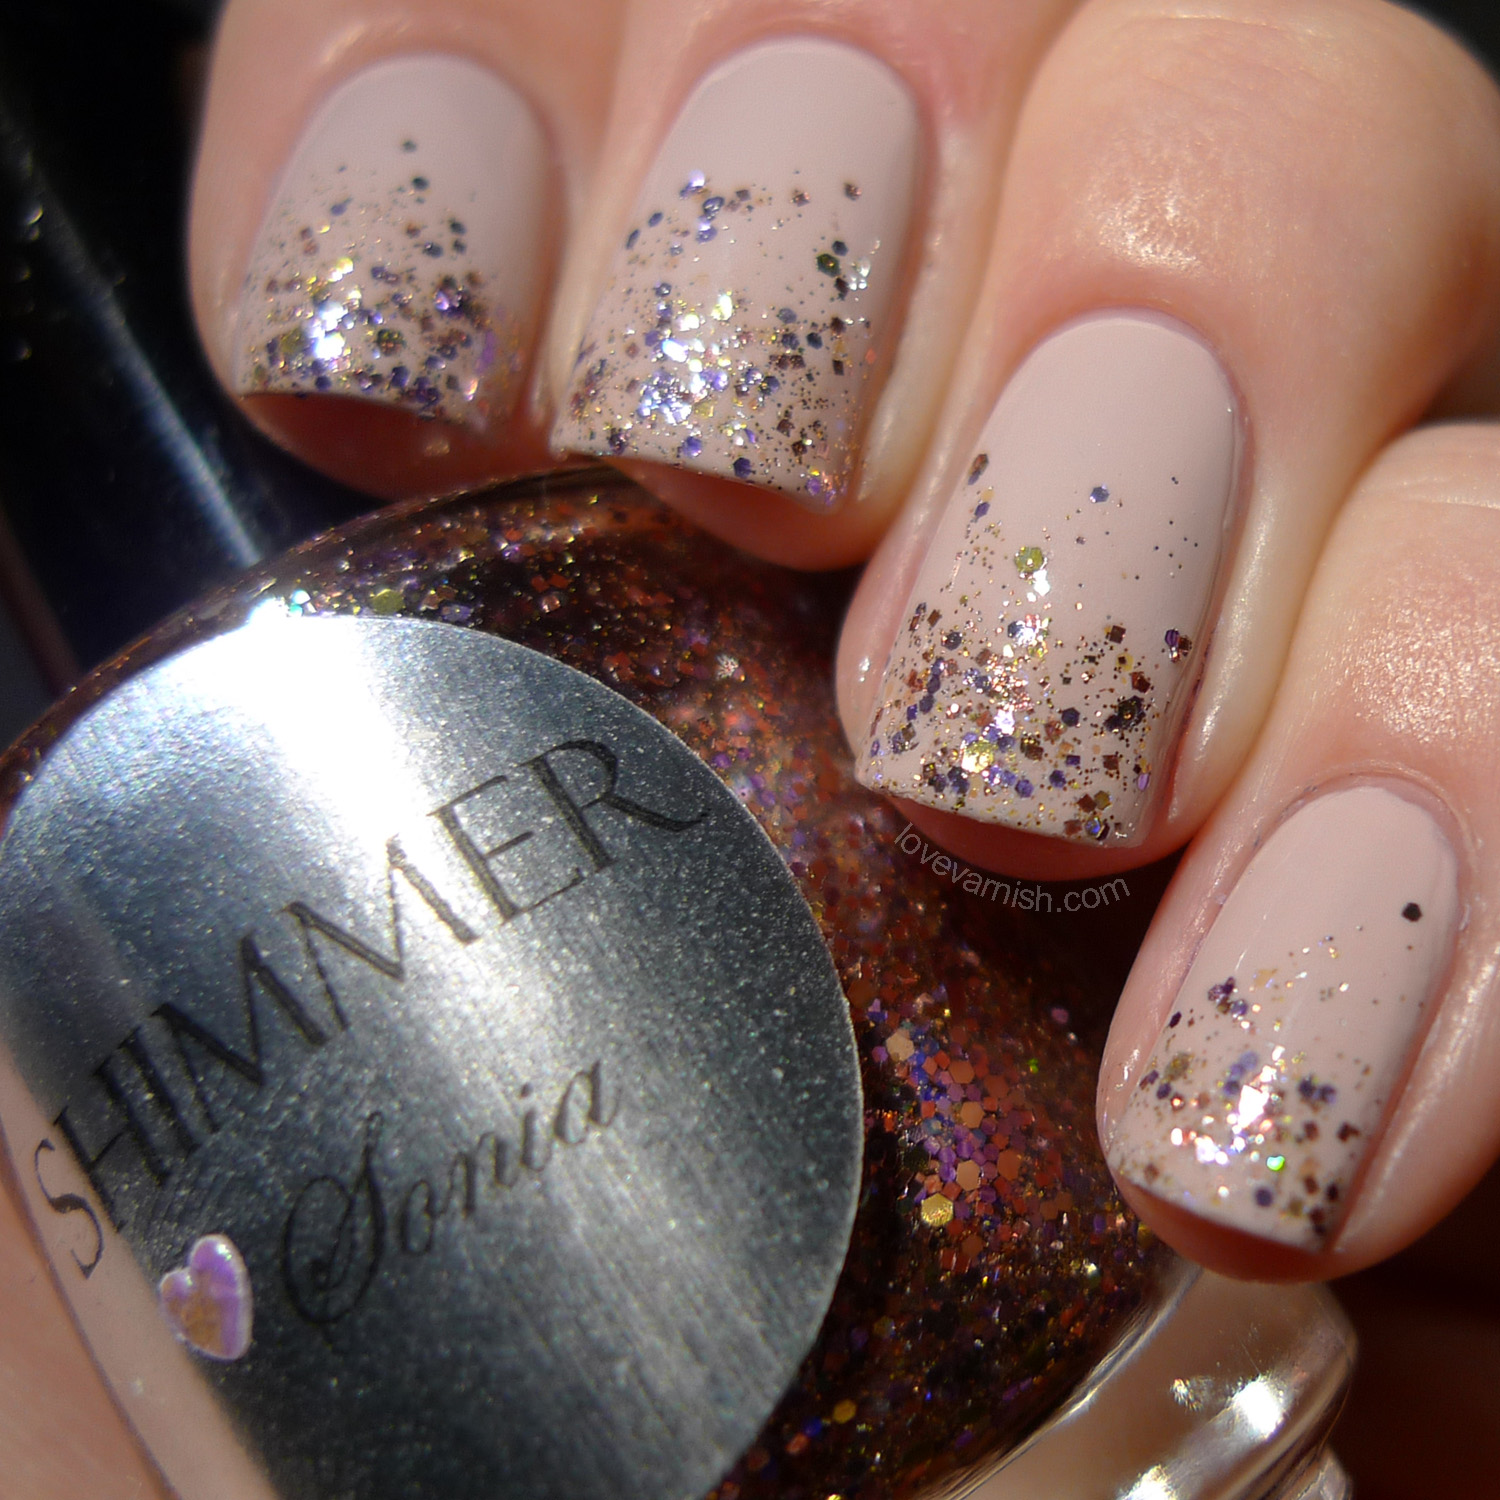 OPI Don't Bossa Nova Me Around and Shimmer Sonia glitter tips